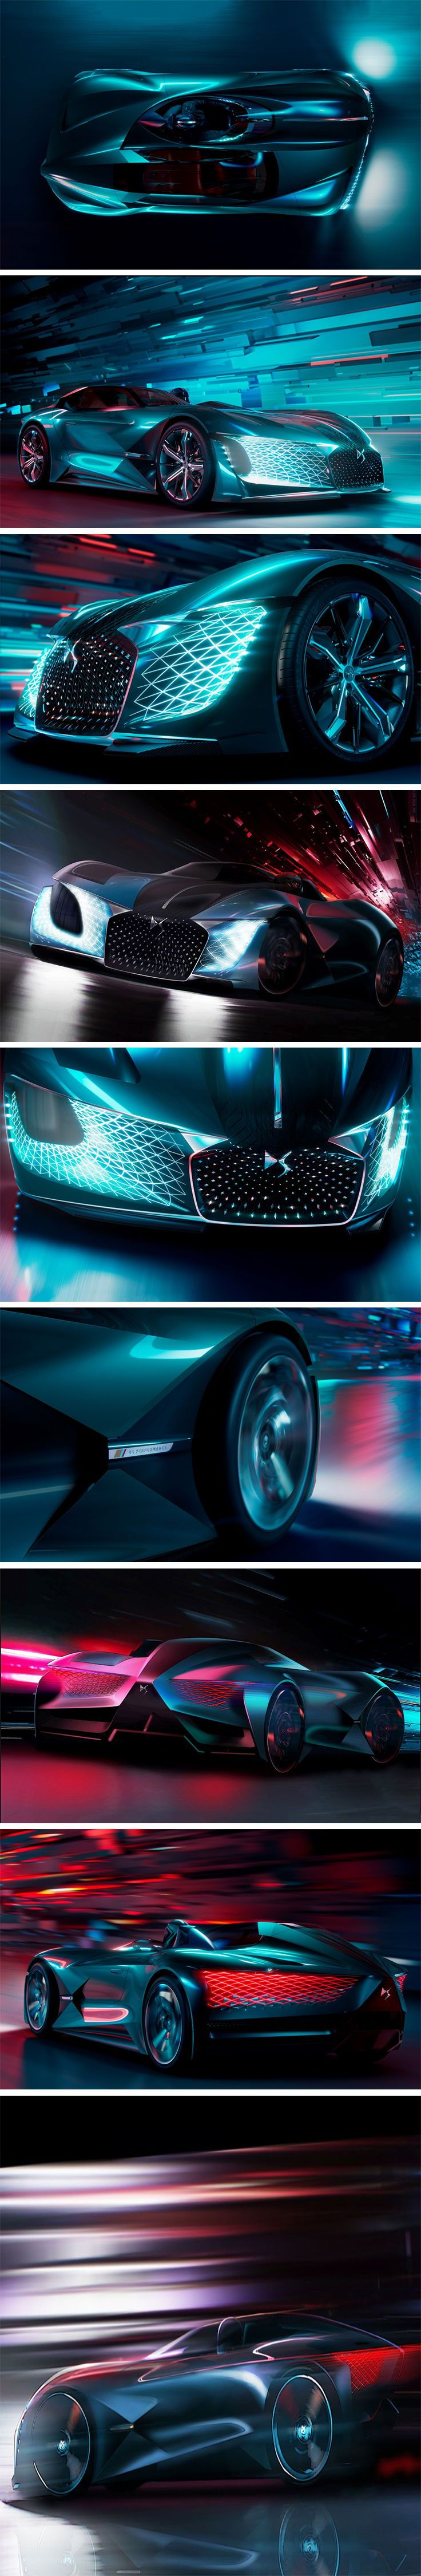 554 Best Futuristic Stuff Images On Pinterest Cars Car Sketch And The Bmw I1 Is An Electric Singleseater Trikecar Concept By Designer Ds X E Tense Conceptual Vehicle Fabulous No Doubt Makes Some Remarkable Promises Designed For A World In 2035 Maybe Tenses Asymmetrical